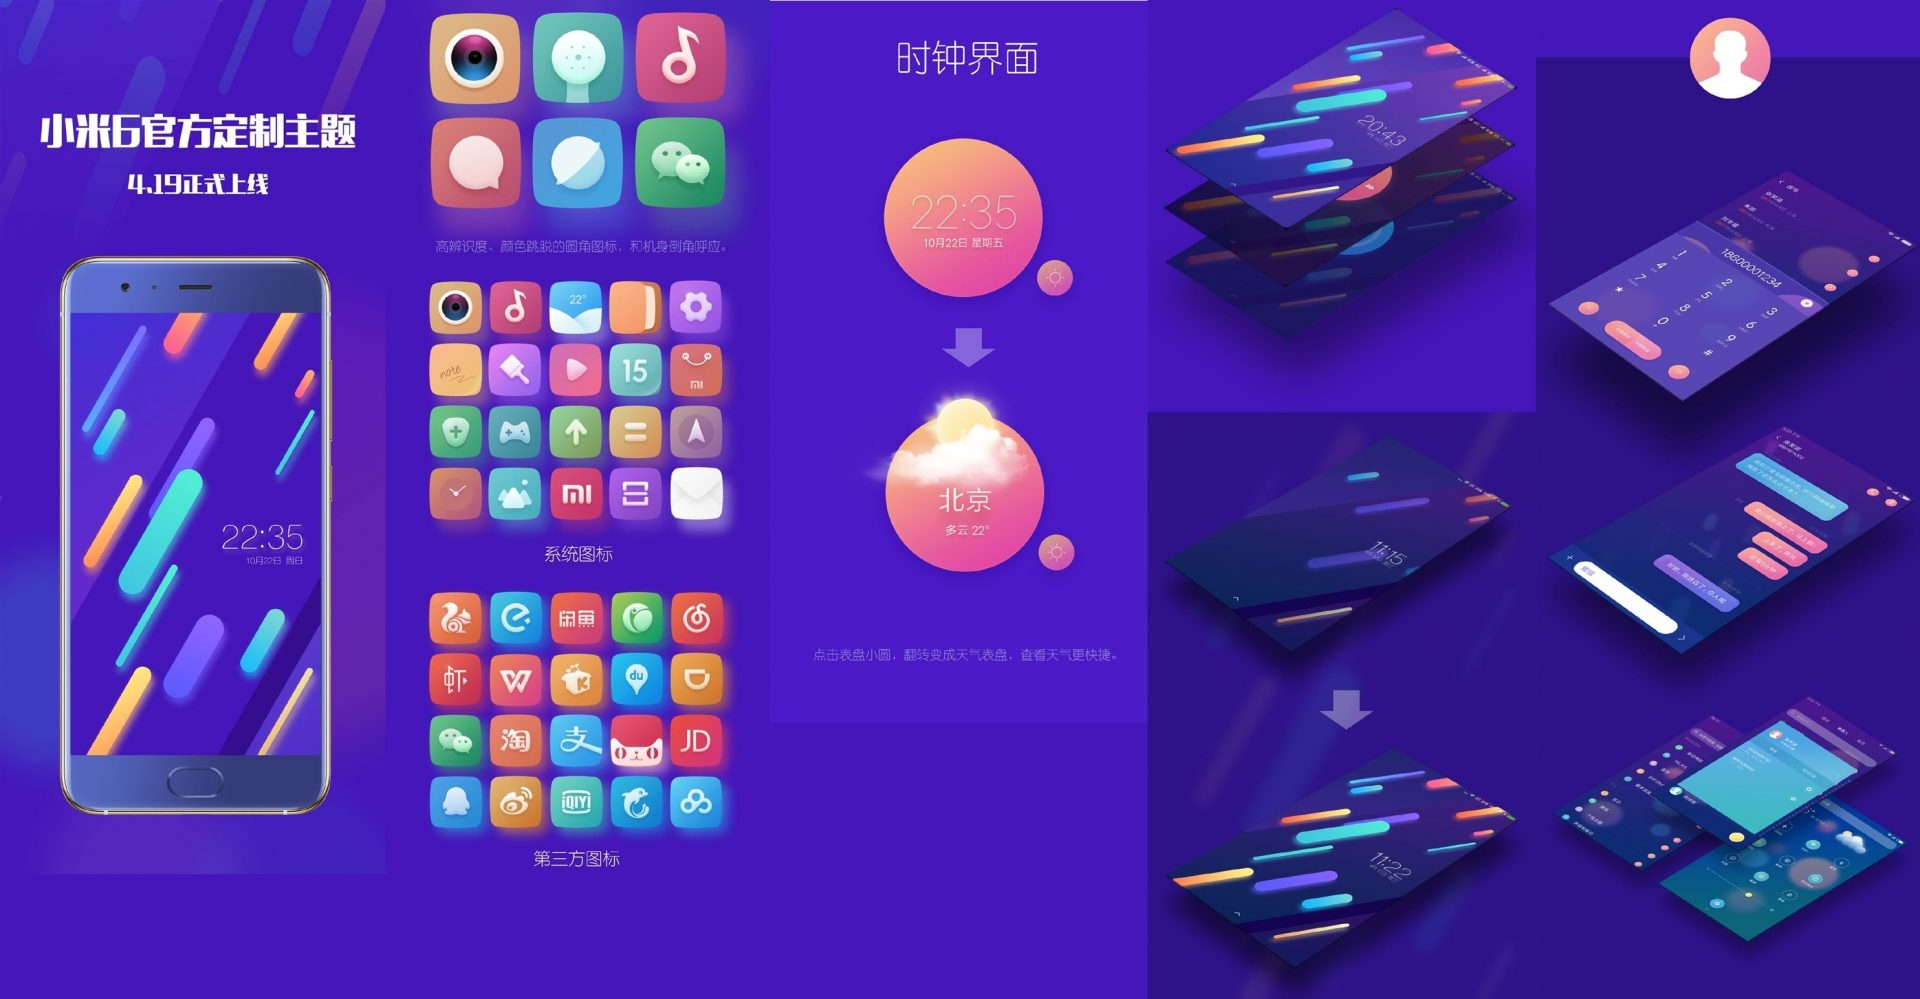 miui 8 3d theme download